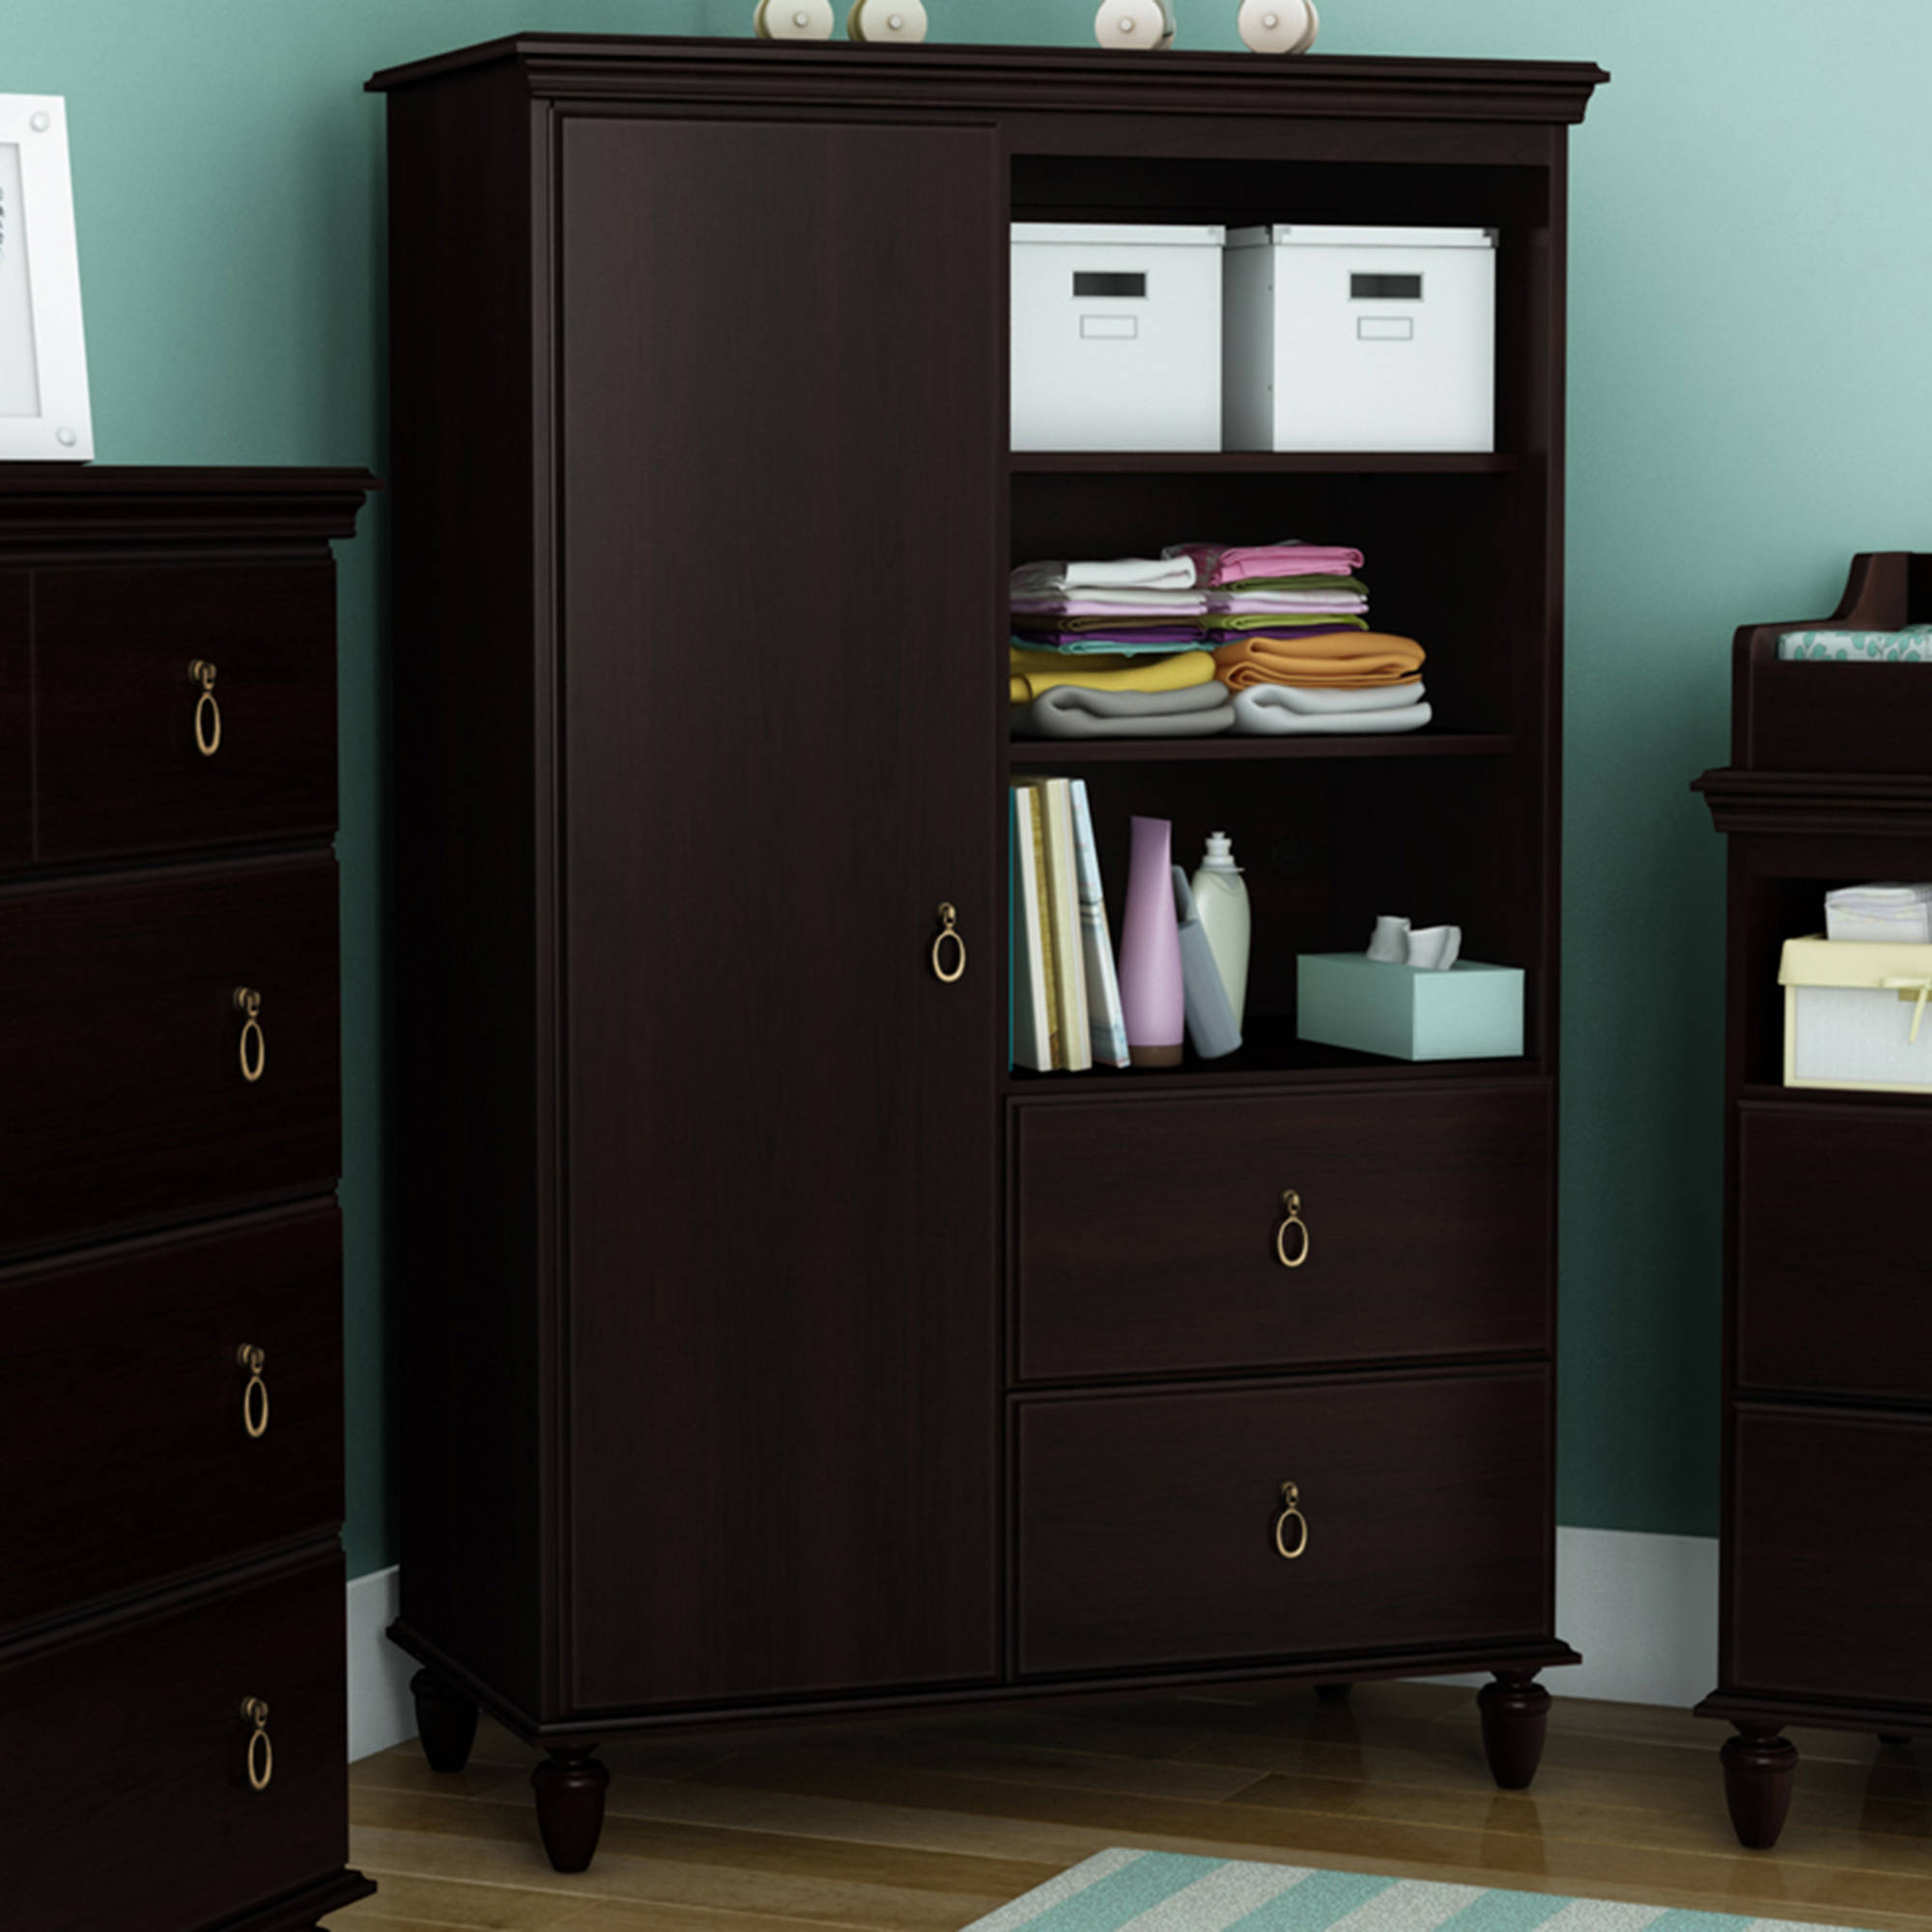 South Shore Moonlight Armoire with Drawers, Multiple Finishes